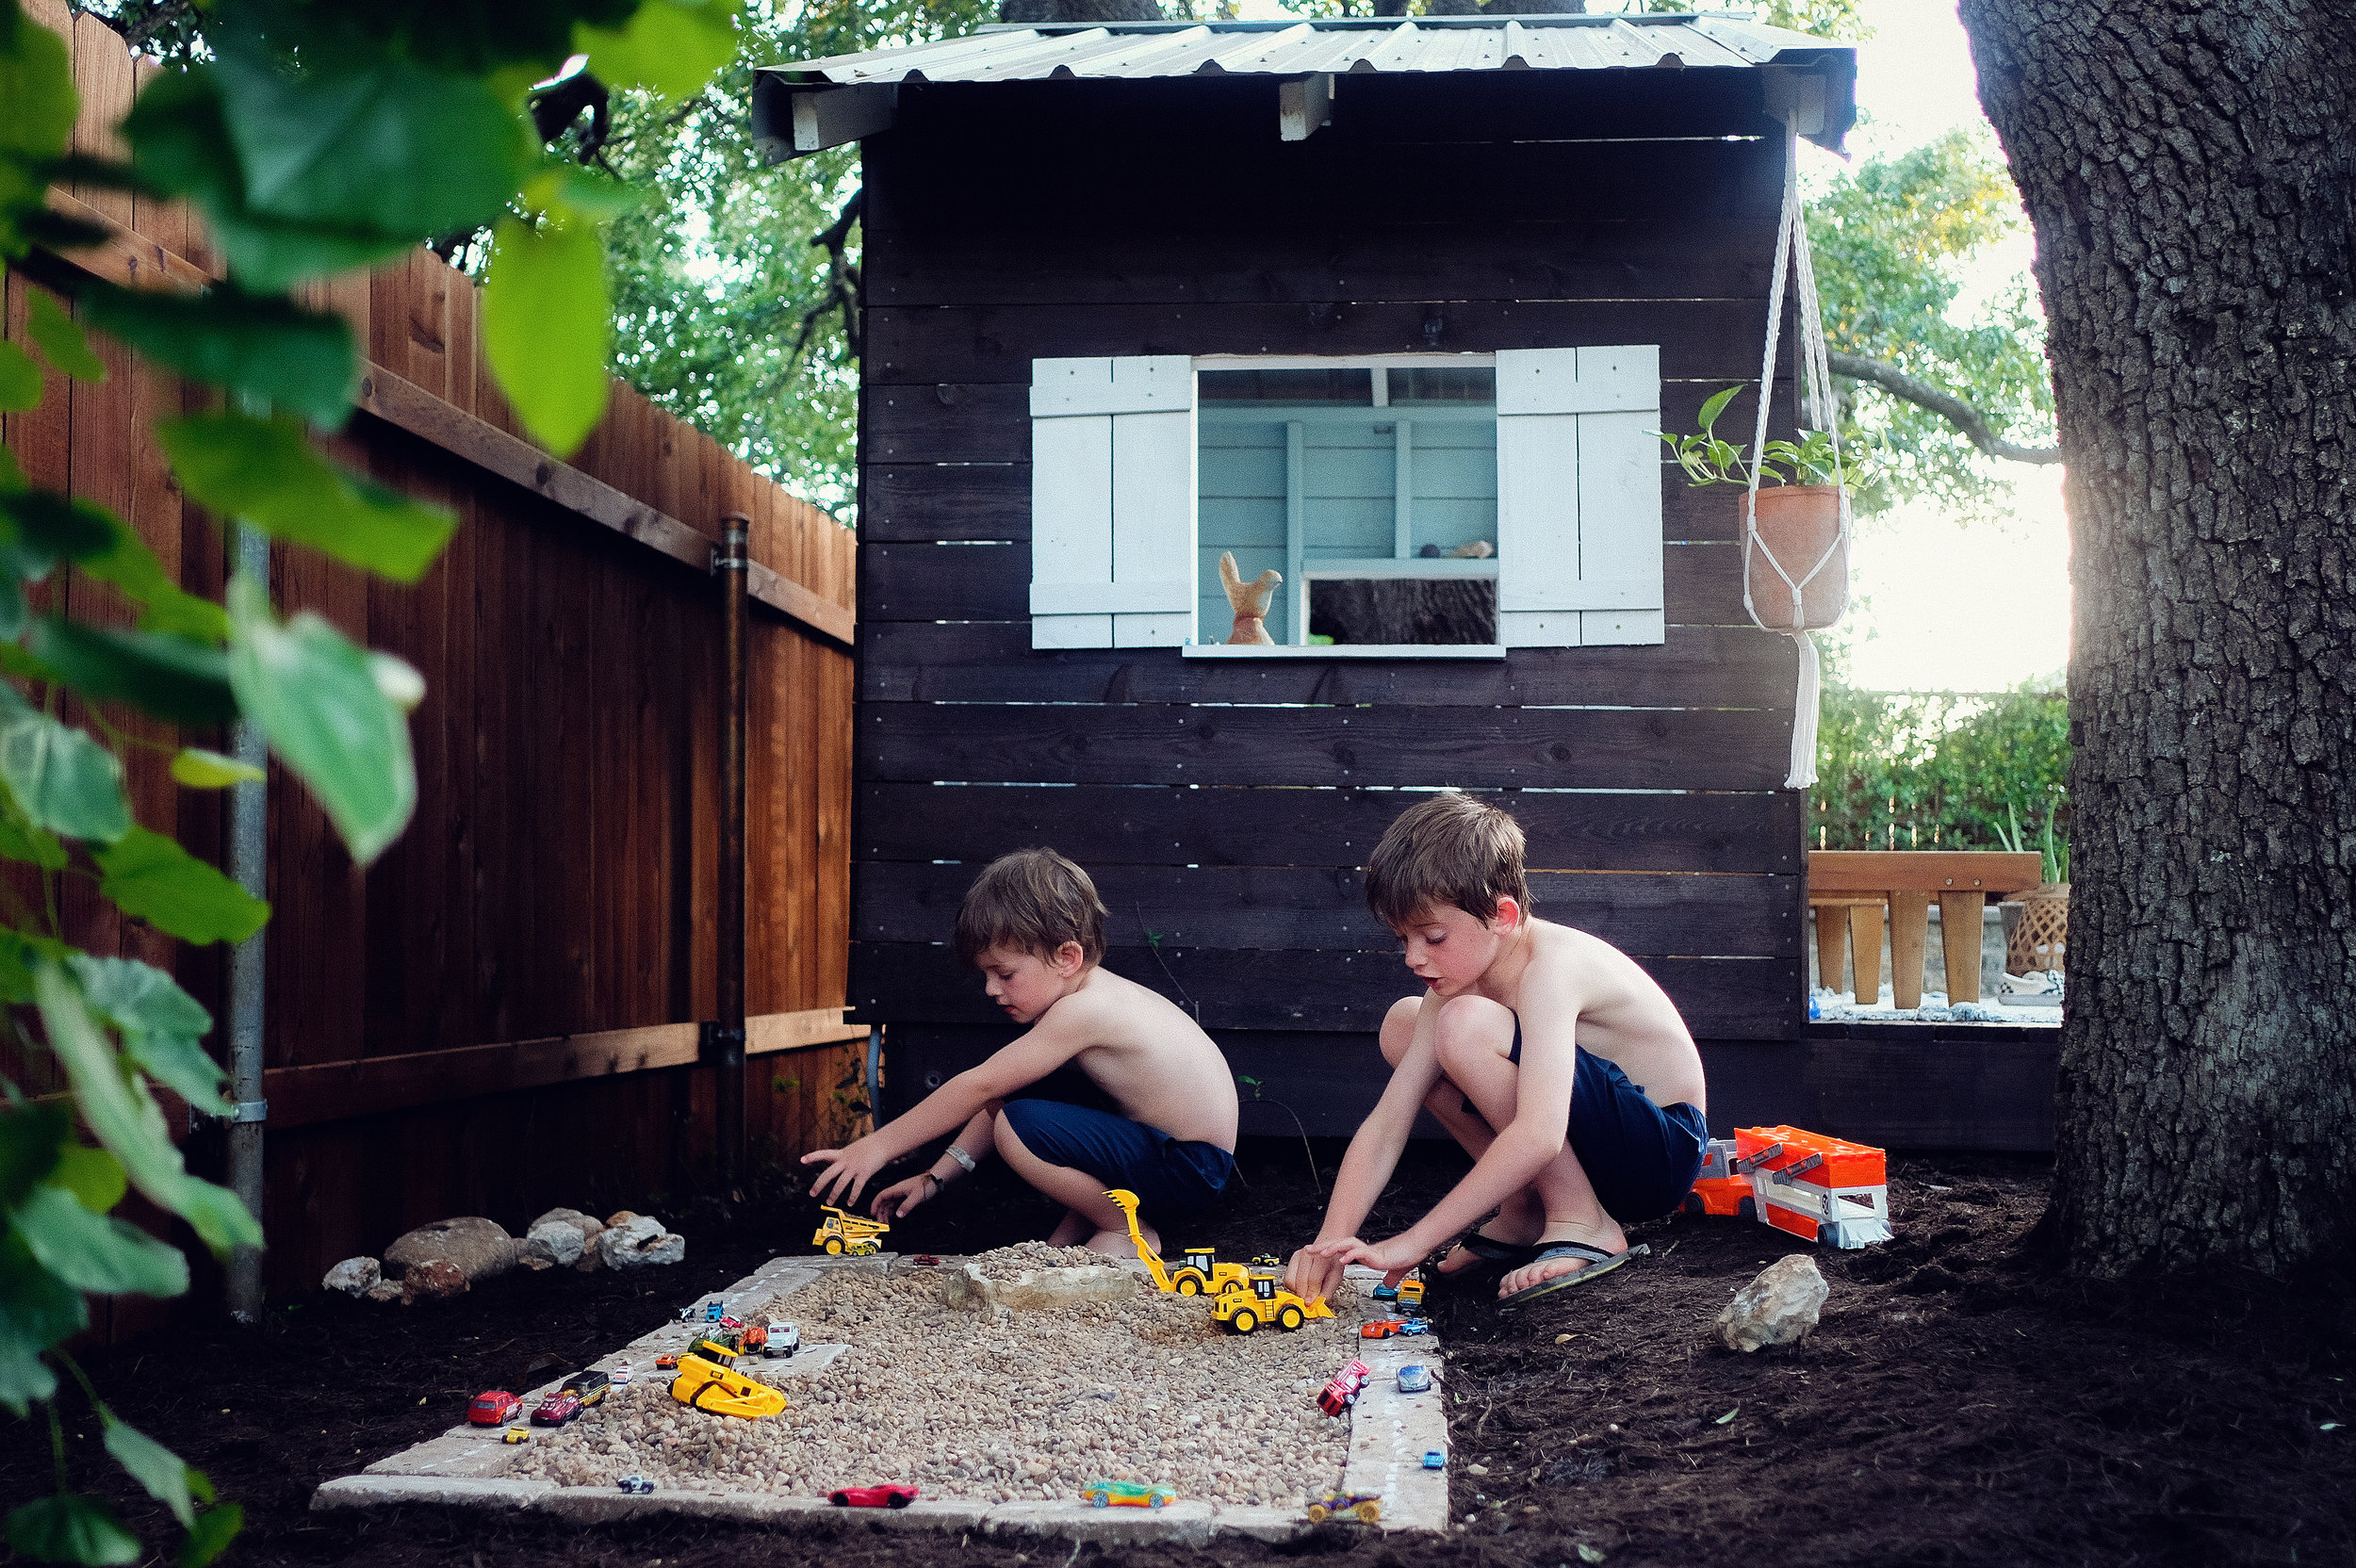 Rock box garden - outdoor play - Lovely Matters Blog - Lifestyle blog - Heather Walker Photography